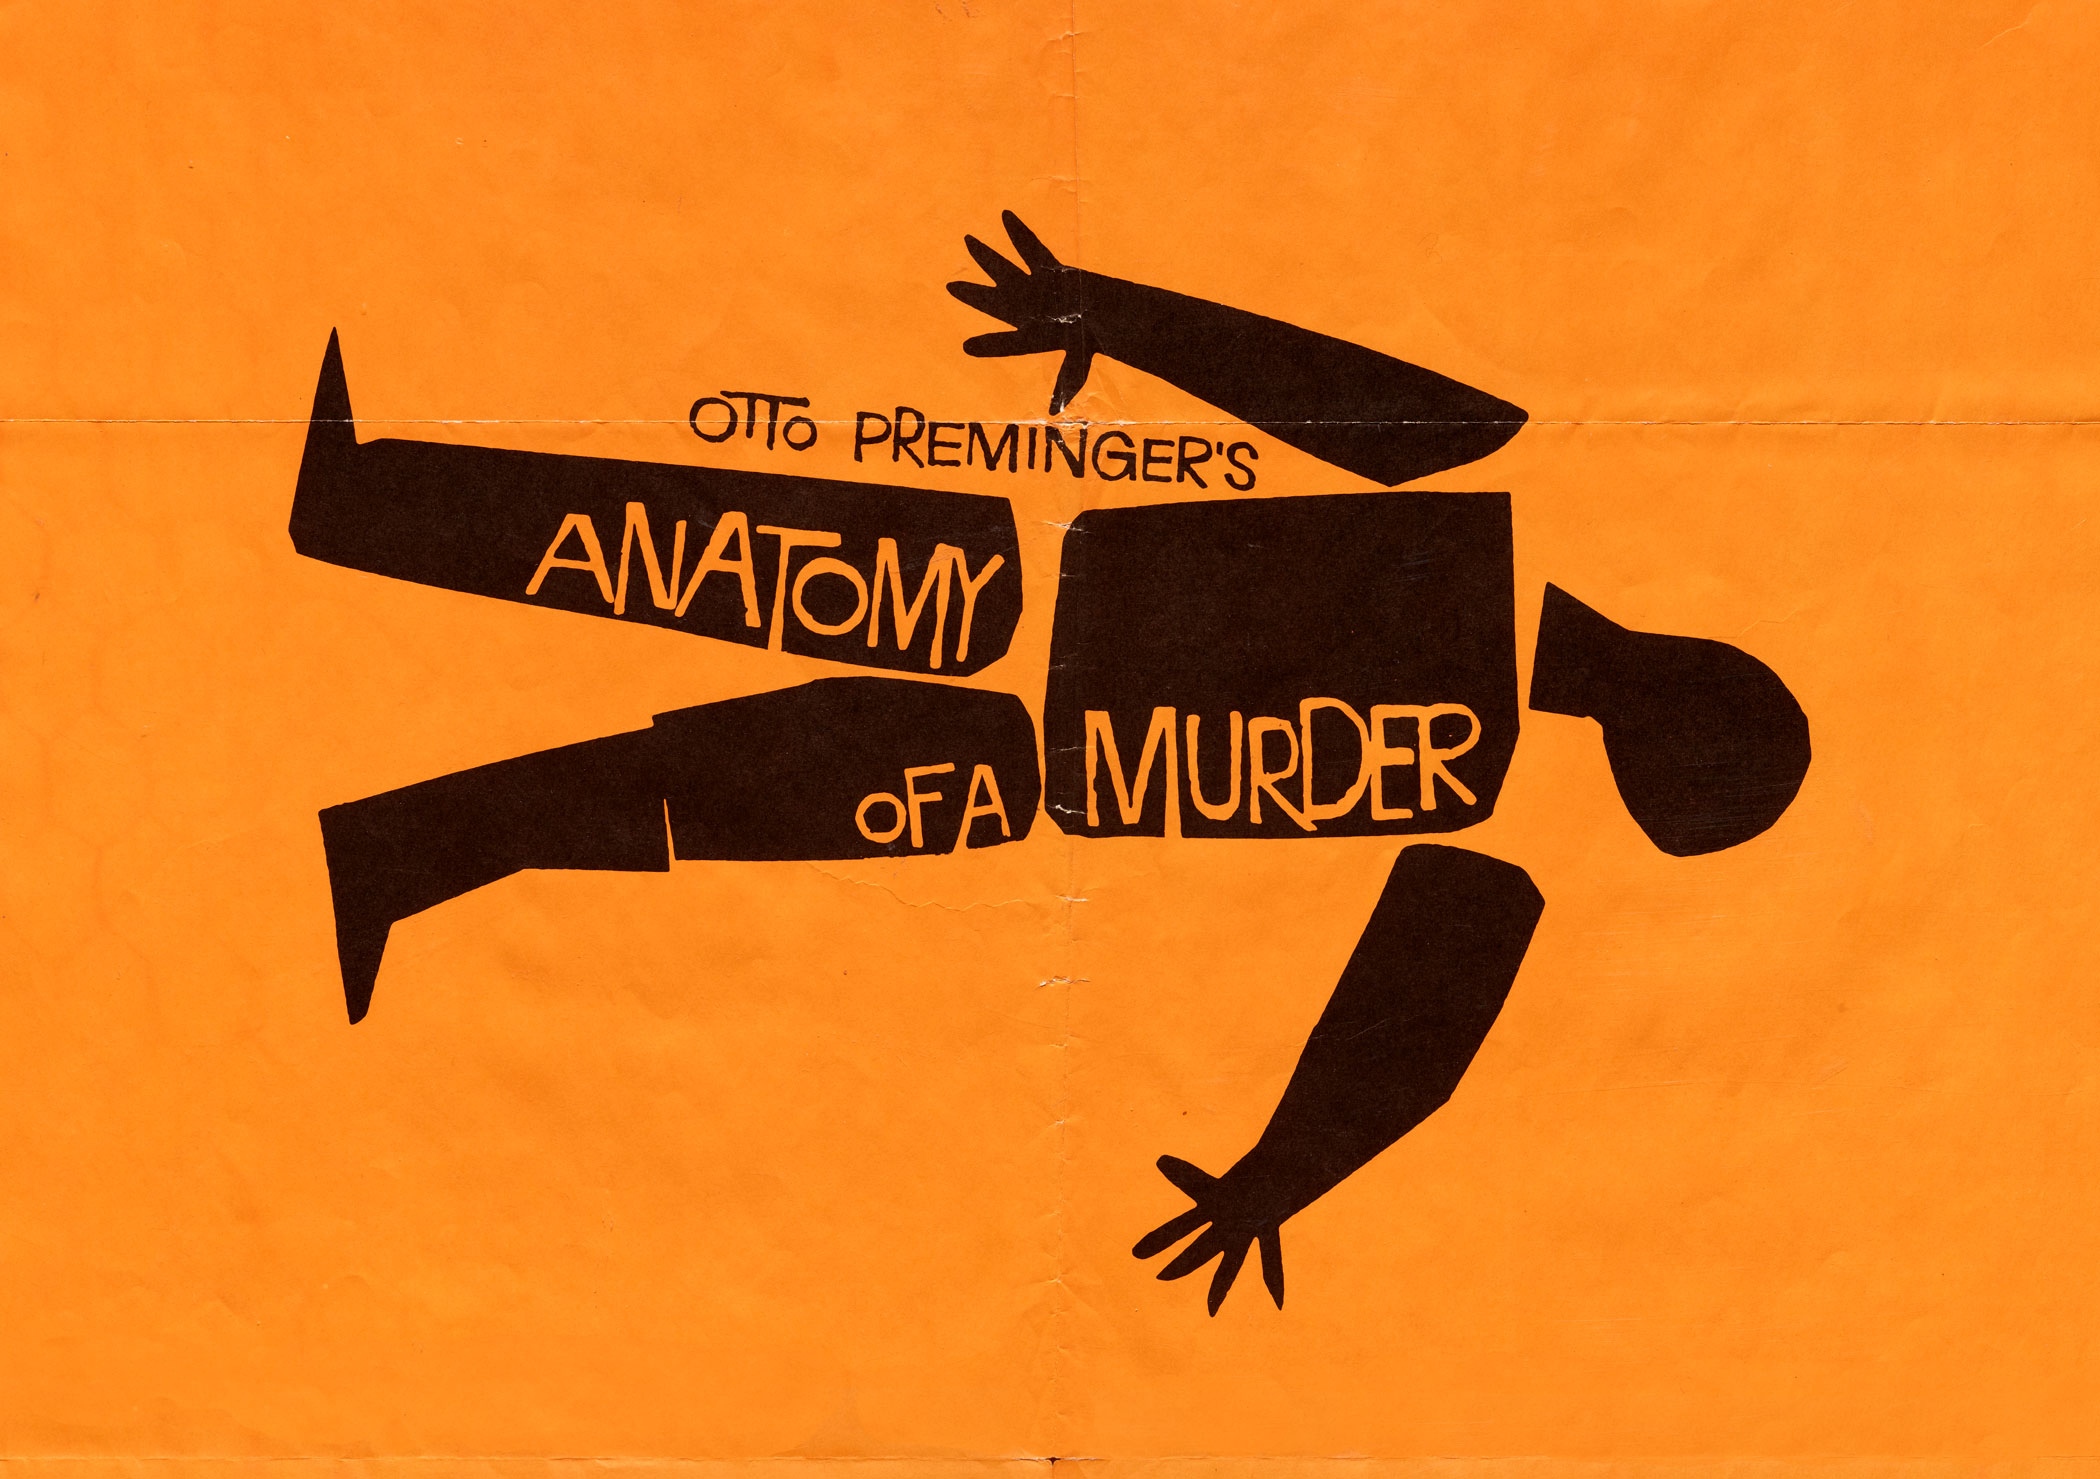 Orange_SaulBass-anatomy-of-a-murder_cropped.jpg